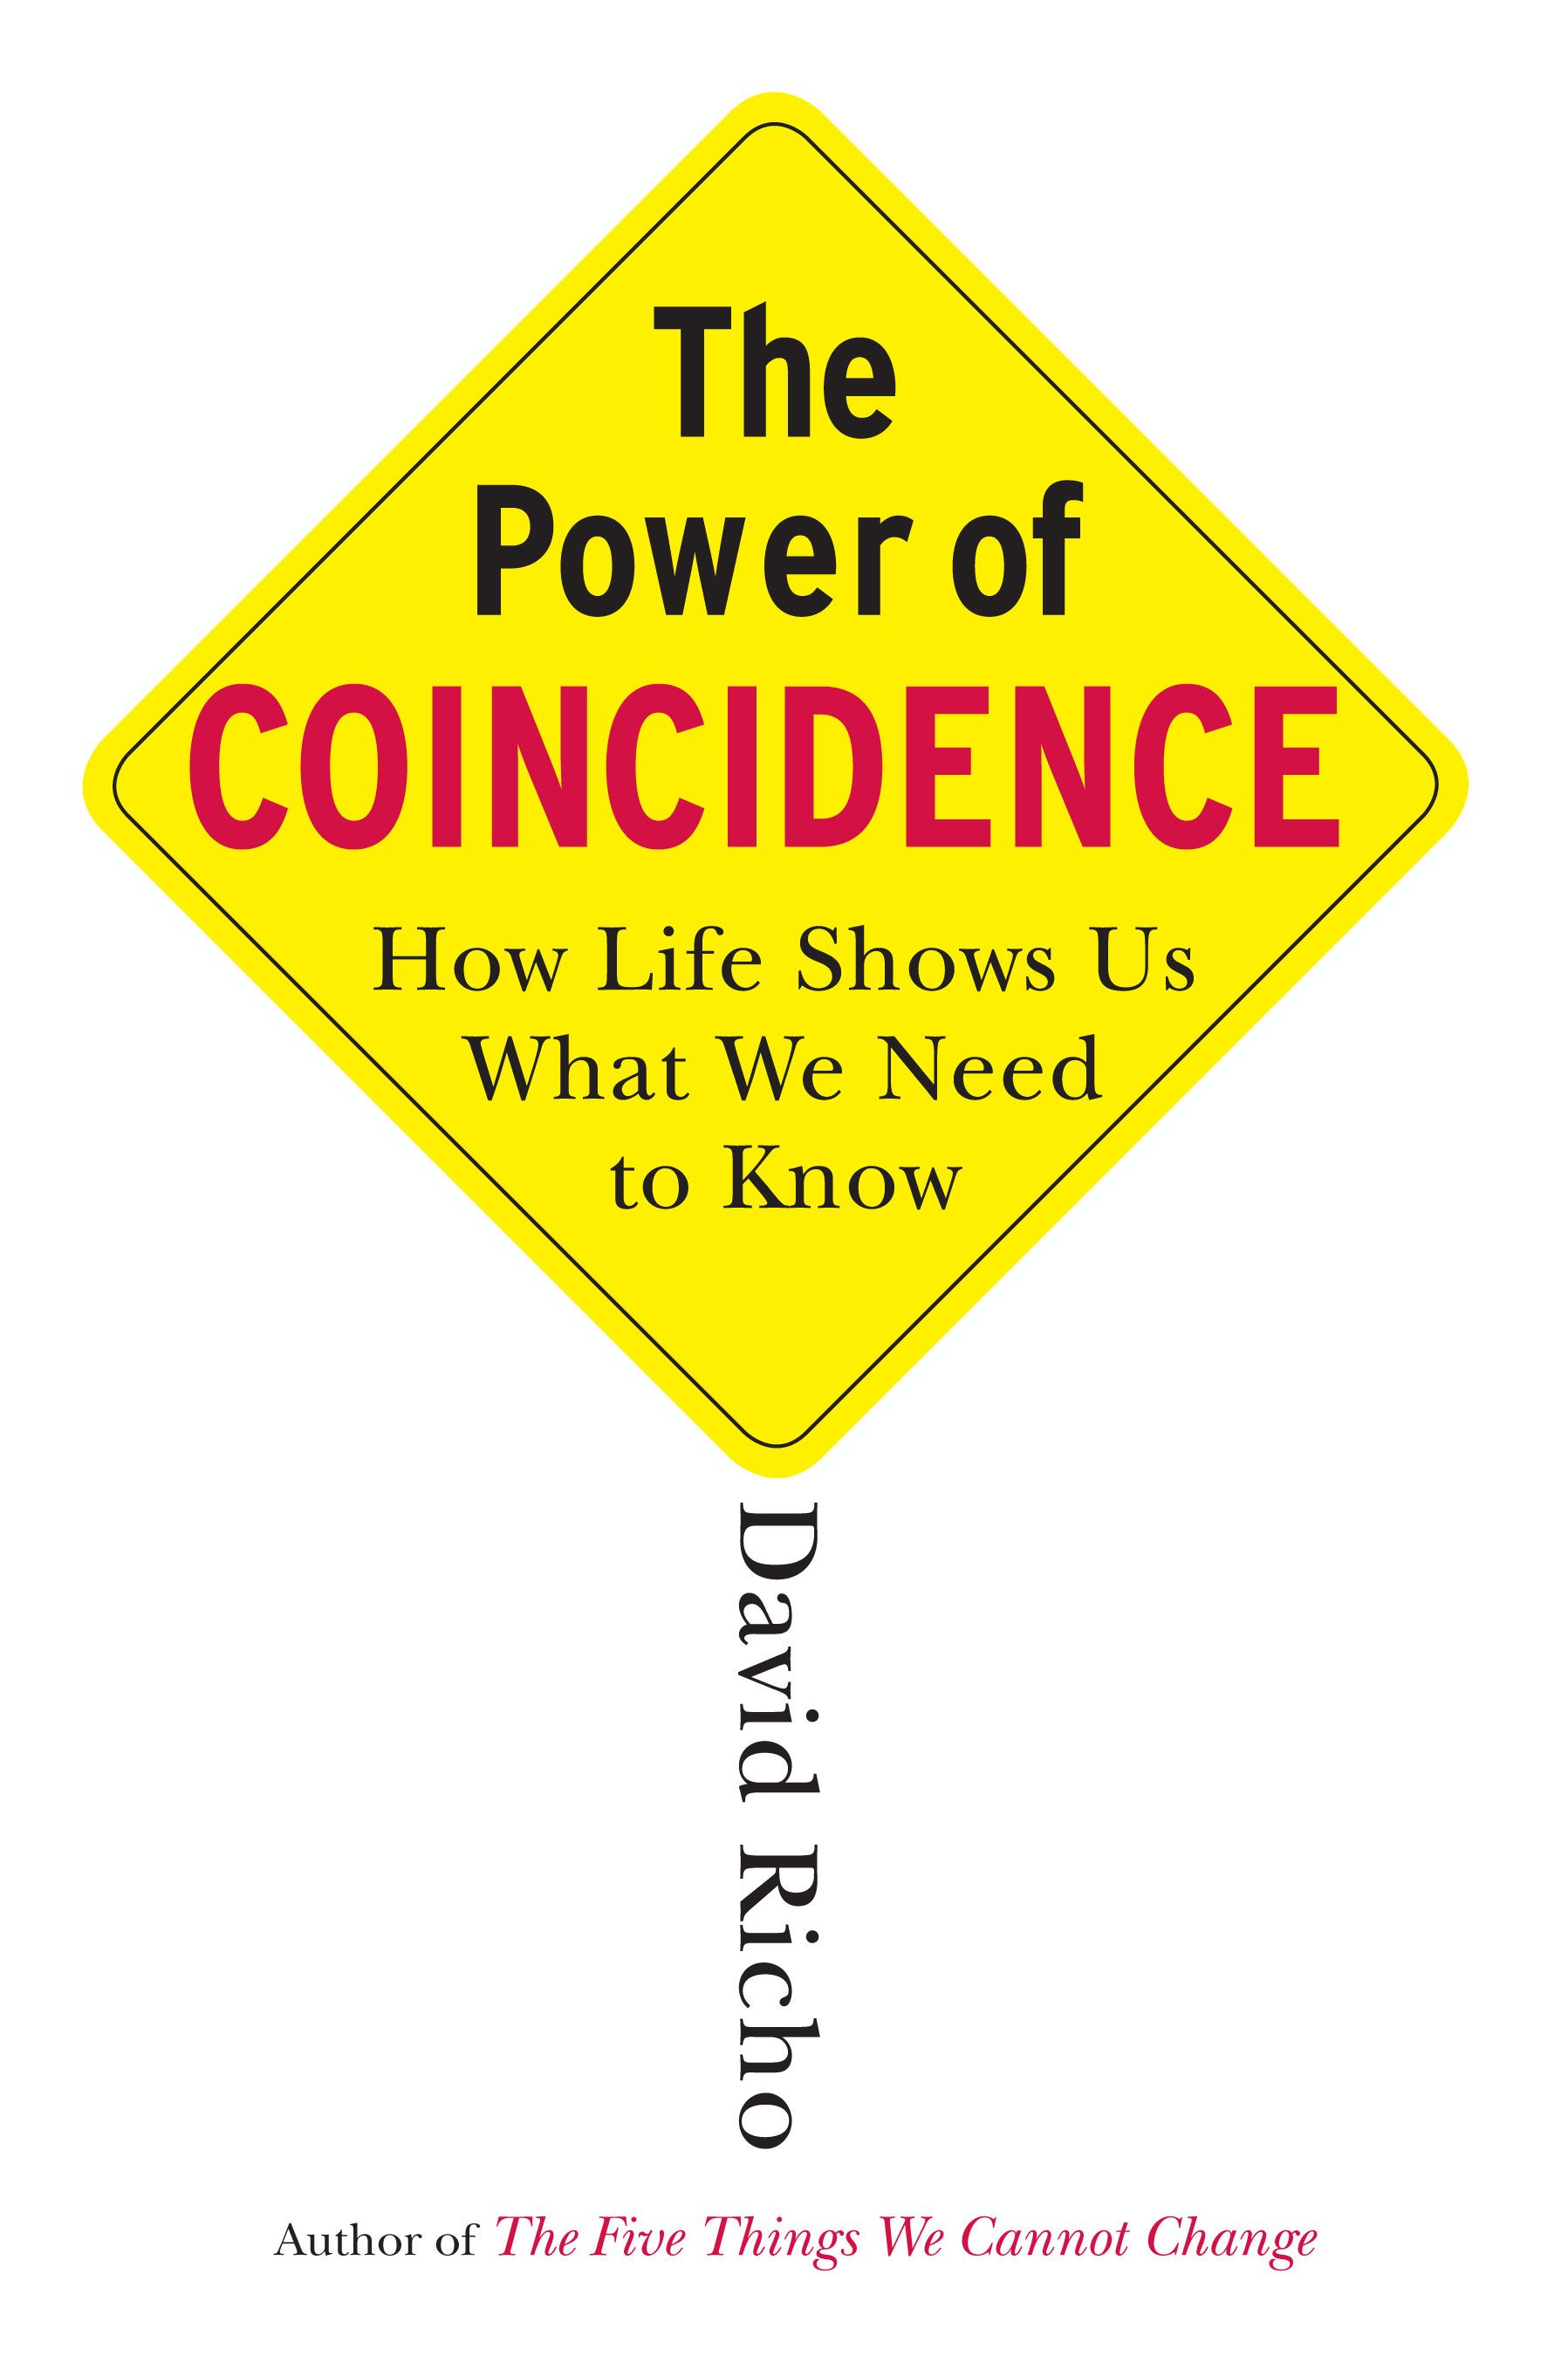 The Power of Coincidence By: David Richo